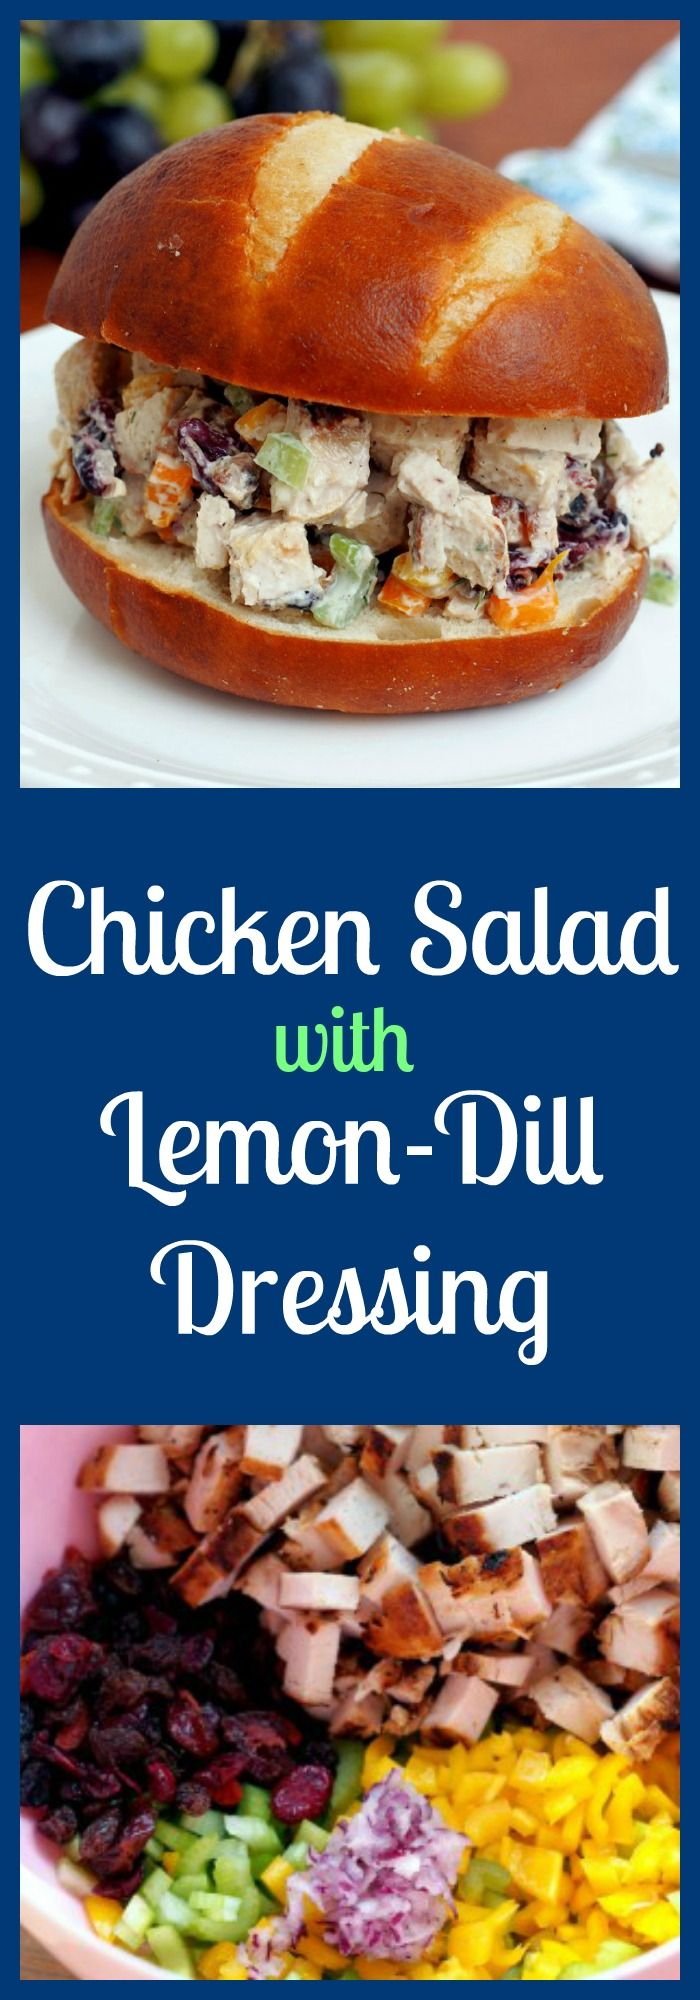 ... lemon juice, garlic, and dill to enrobe the juicy chicken, crunchy